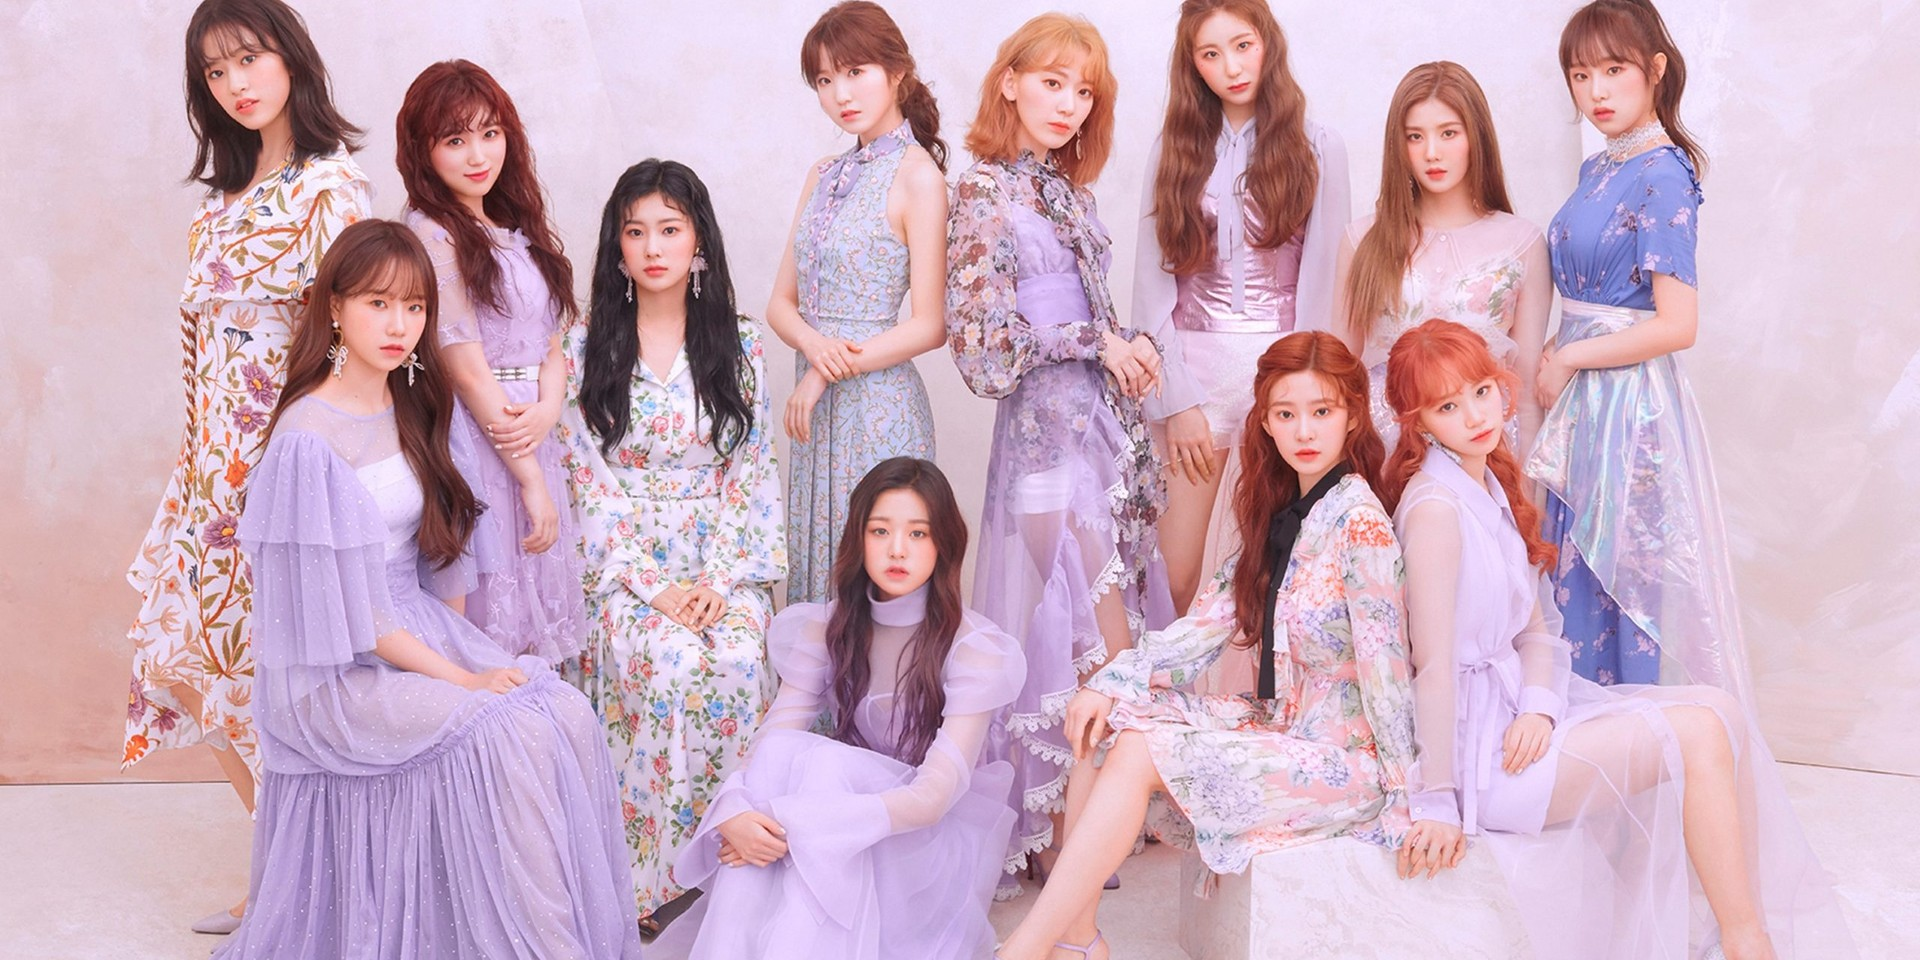 Mnet confirms IZ*ONE to disband this April